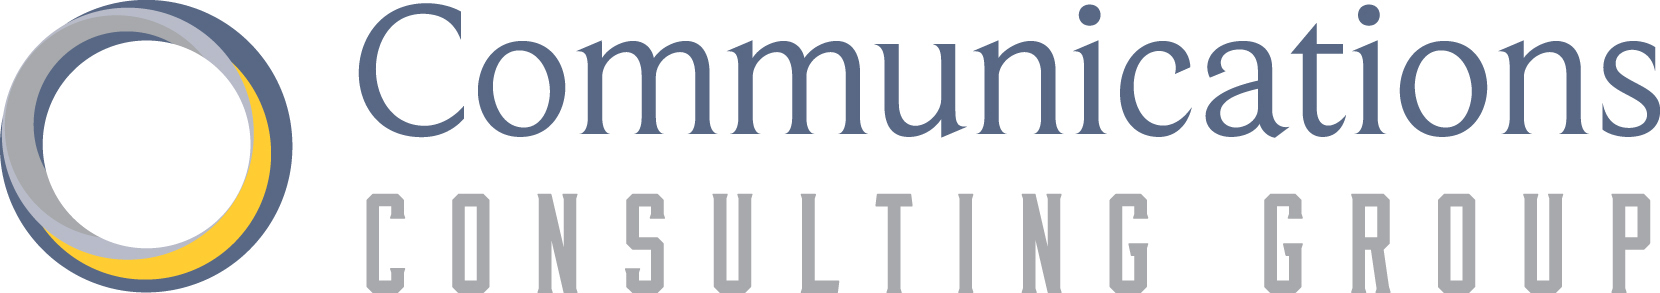 Communications Consulting Group logo